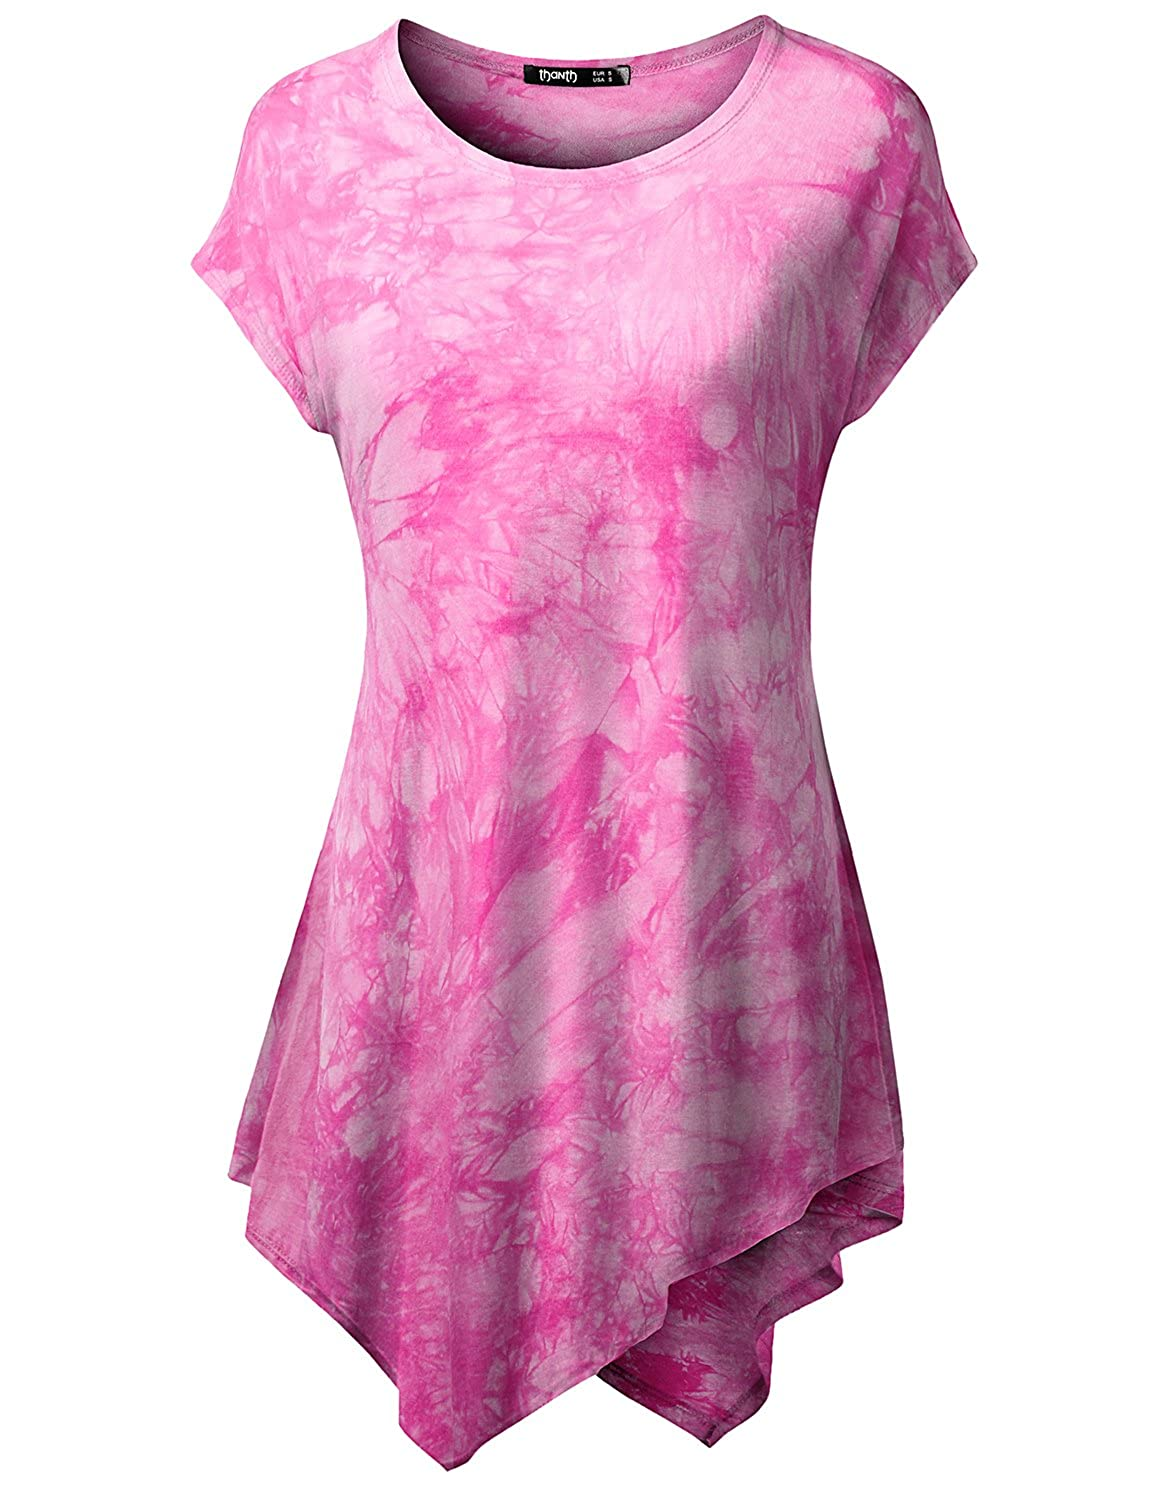 53670a664f0 Machine wash cold   Tumble dry   Do not bleach. TWINTH Womens Short Sleeve  Tie Dye Handkerchief Hem Loose Fit Tunic with Plus Size   Long sleeve Tunic  with ...